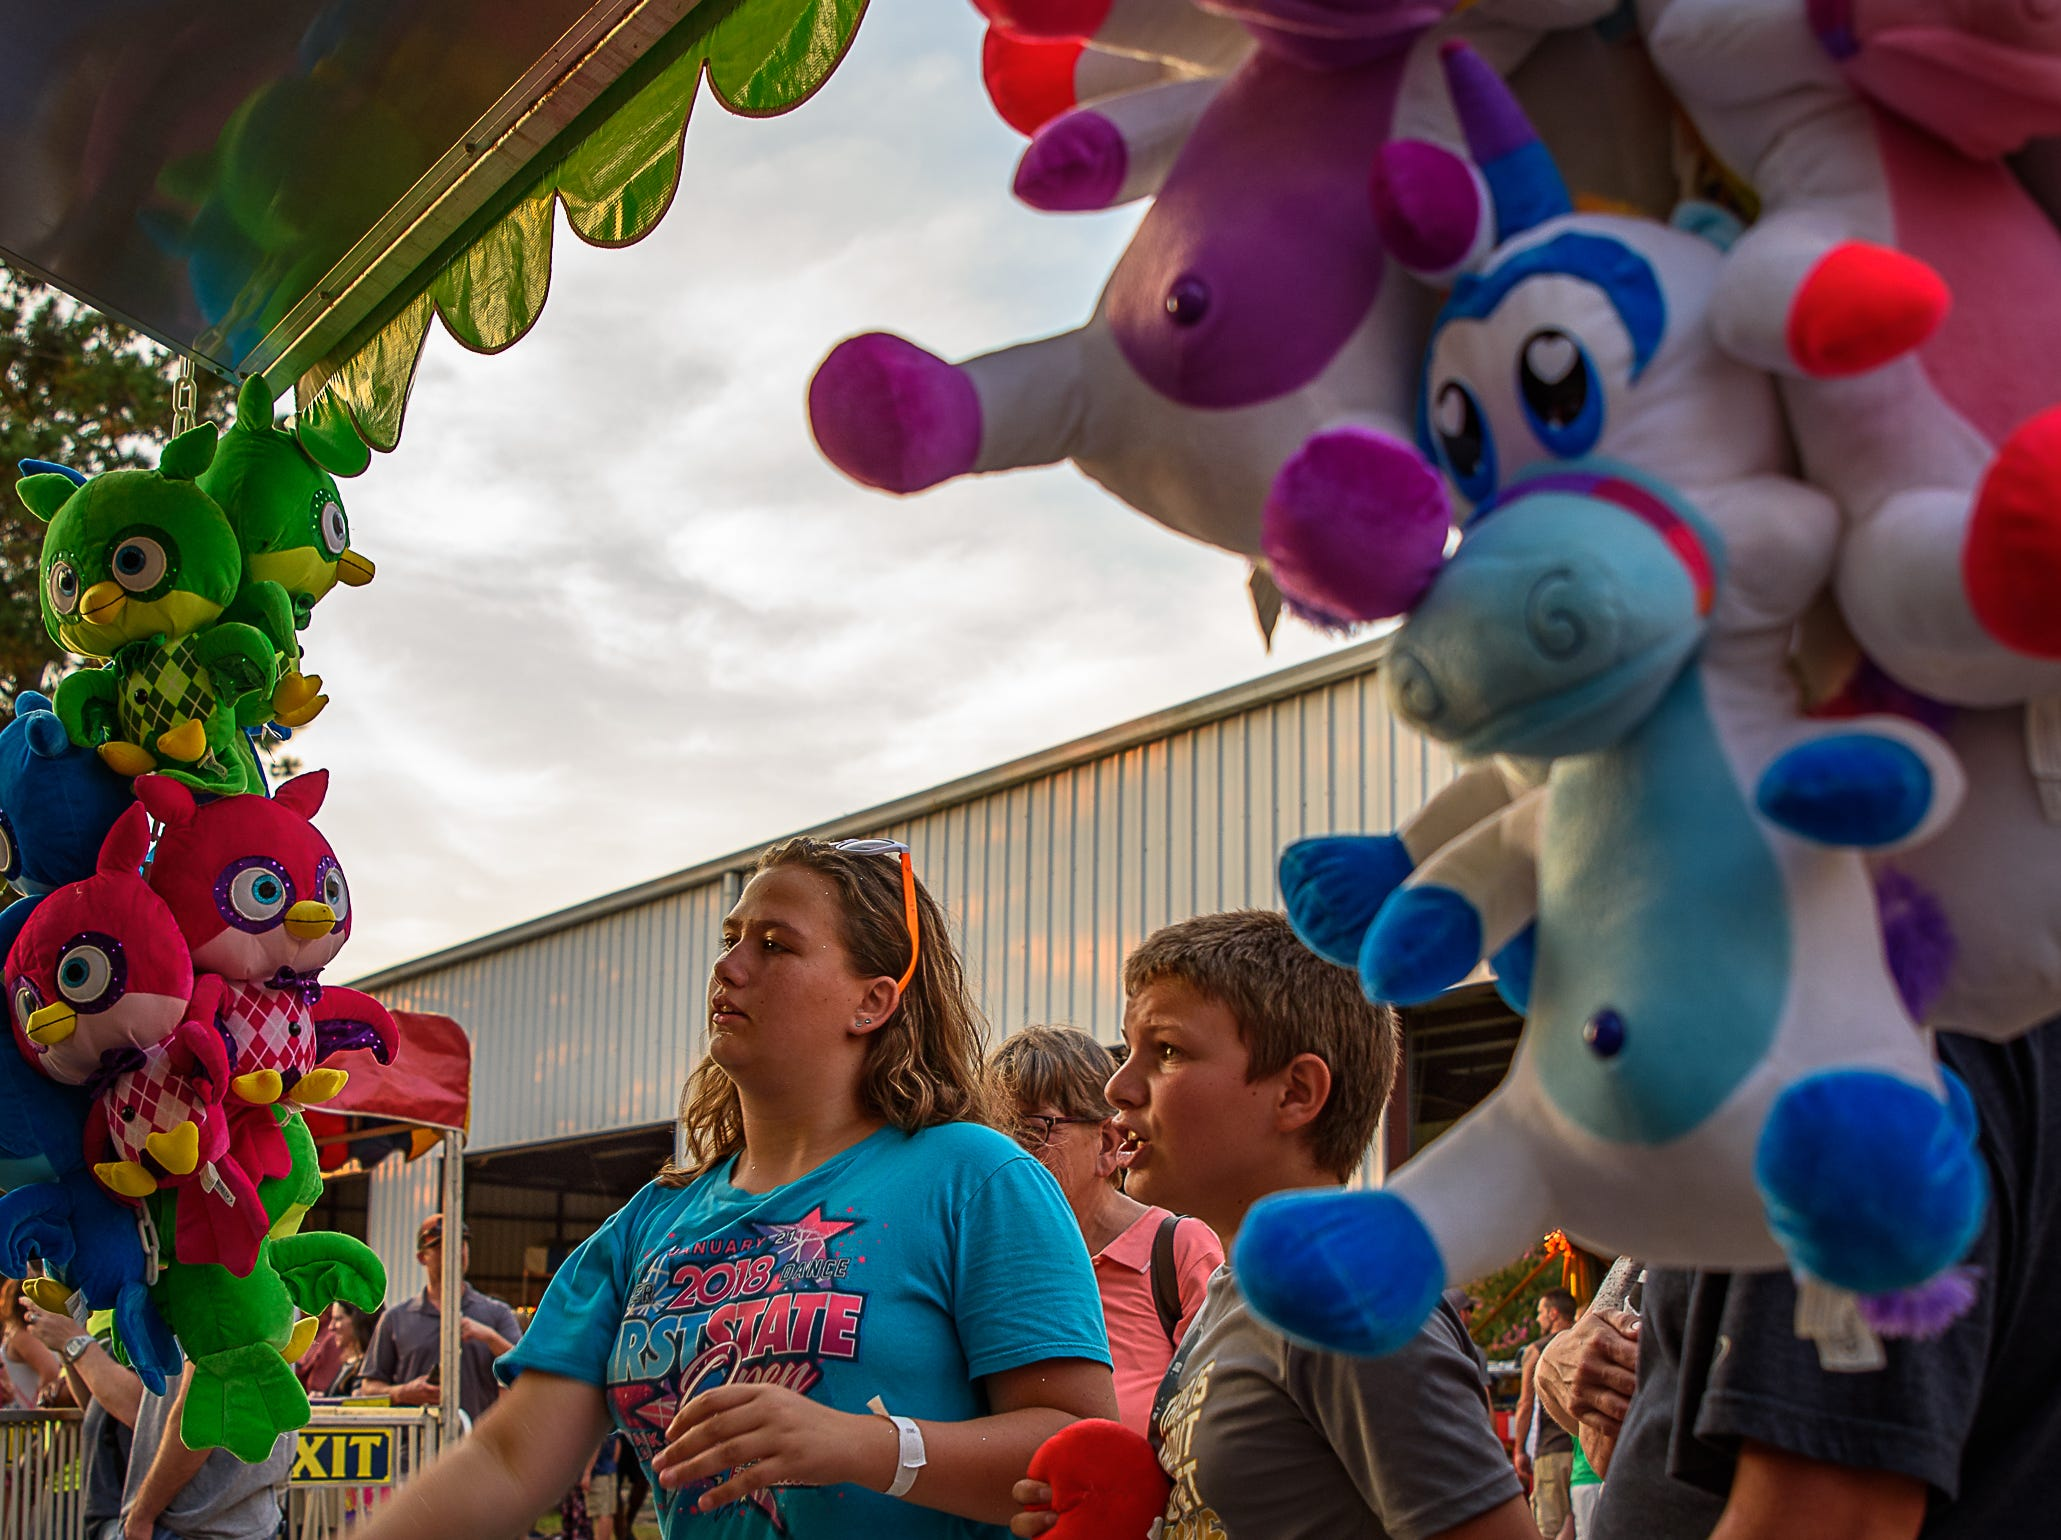 Attendees at the Carnival try their luck at one of the many game booths at the Chincoteague Fireman's Carnival.